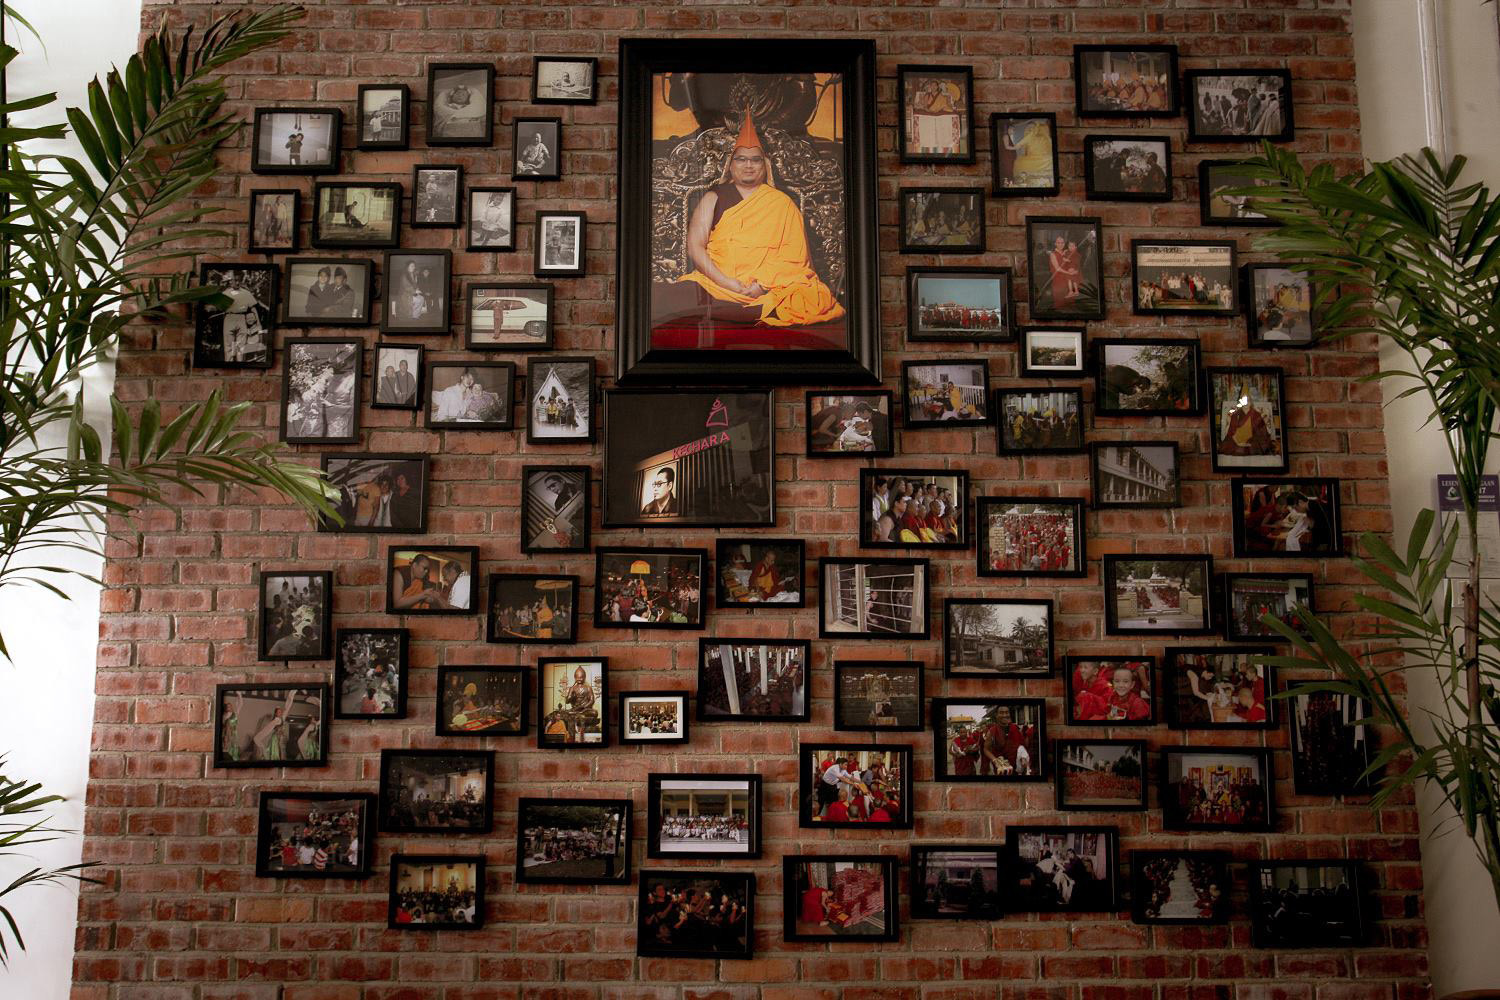 An interesting, creative photo wall inside the Kechara Puja House. Click on image to enlarge.